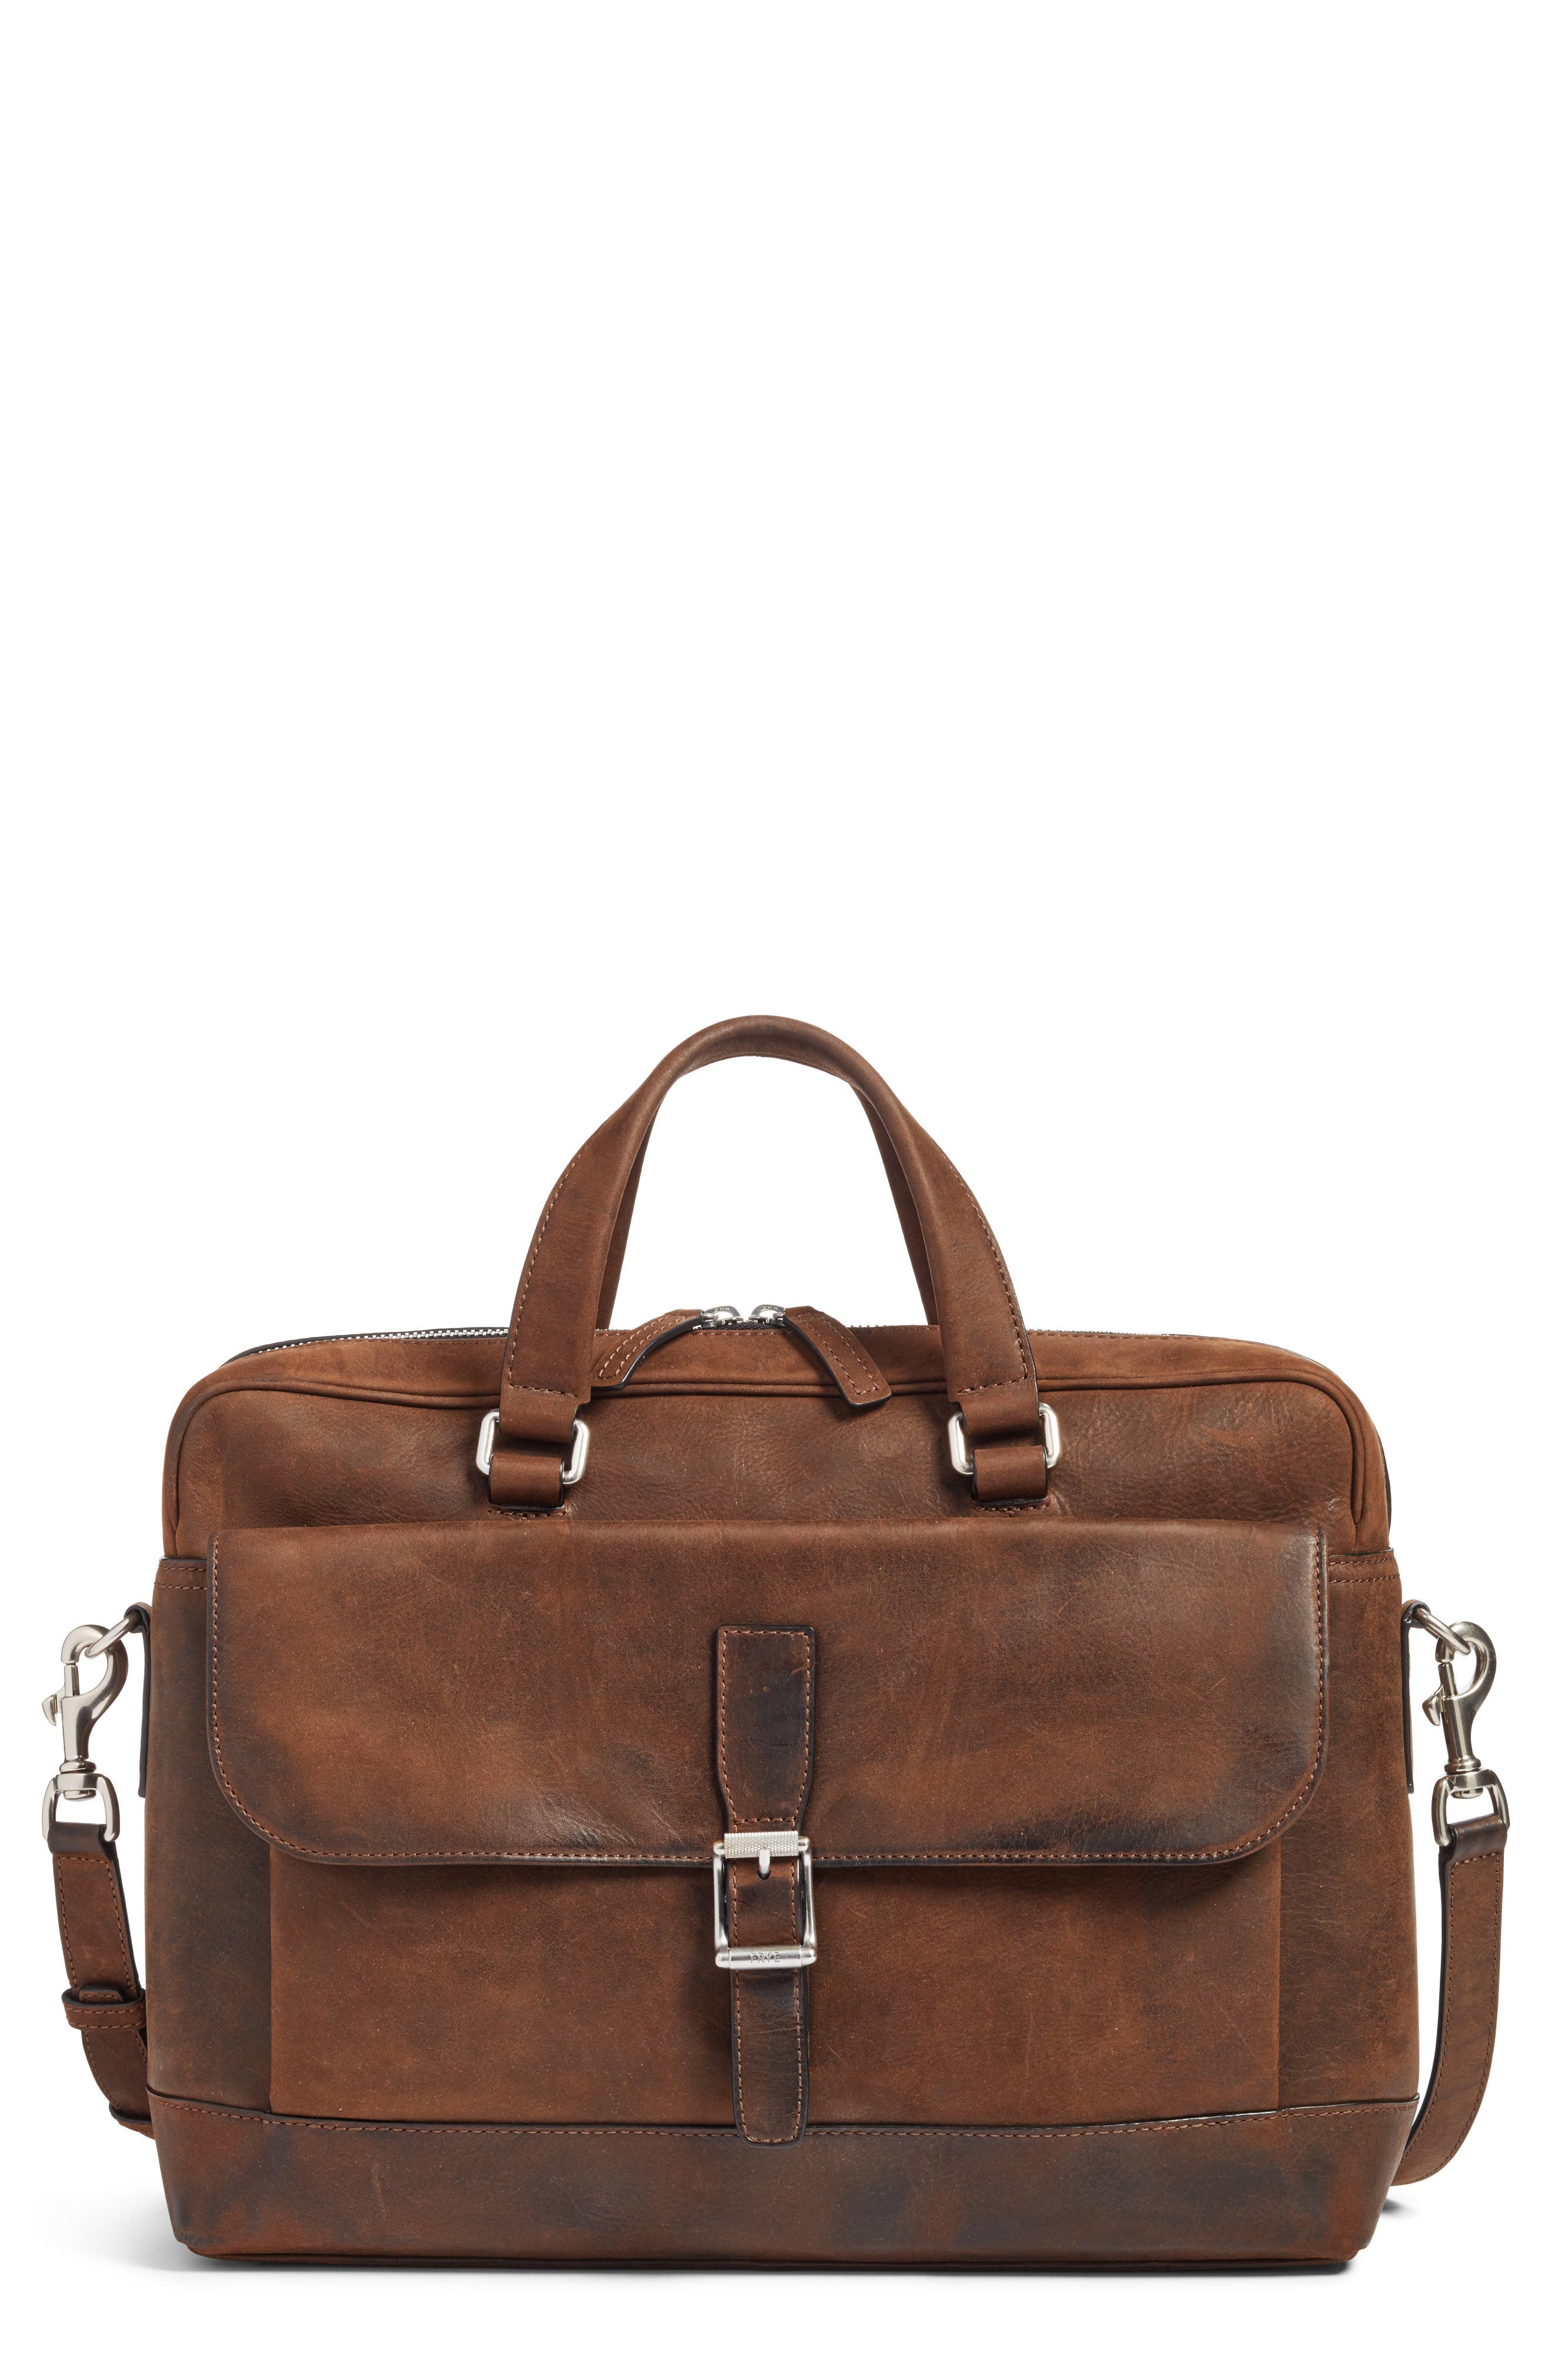 Oliver Leather Briefcase,                             Main thumbnail 1, color,                             Dark Brown